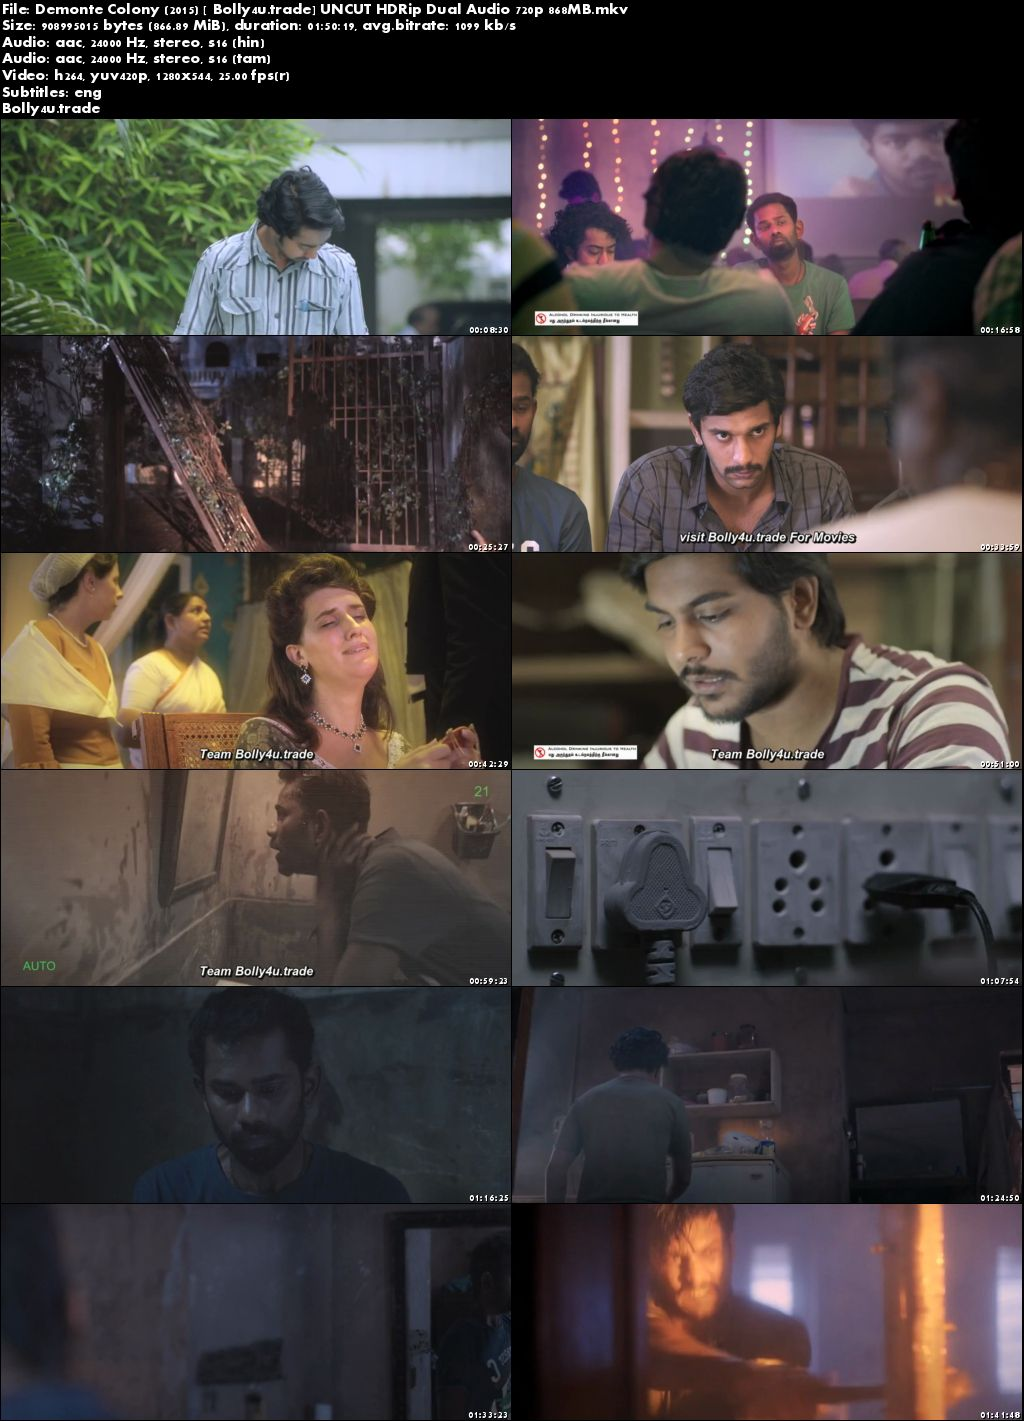 Demonte Colony 2015 HDRip 350MB UNCUT Hindi Dual Audio 480p Download